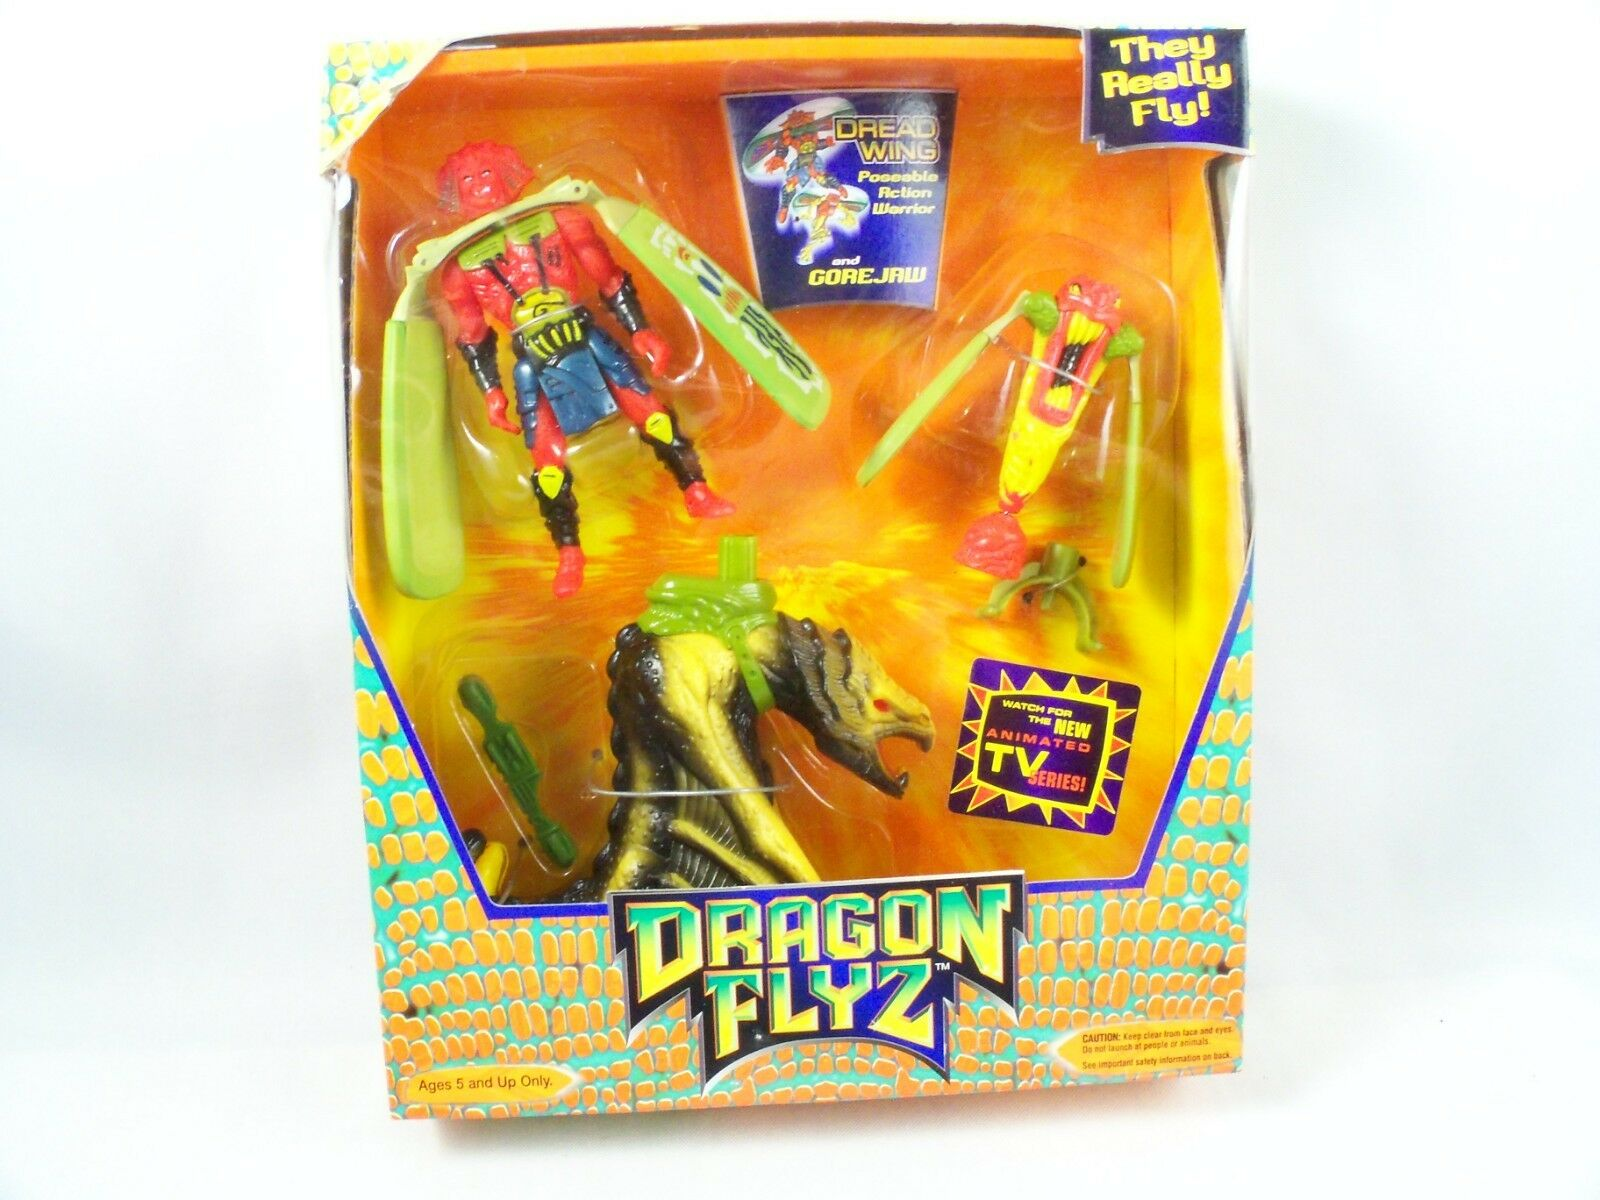 Galoob Dragon Flyz Dread Wing GoreJaw Dragon Launcher 1996 Sealed